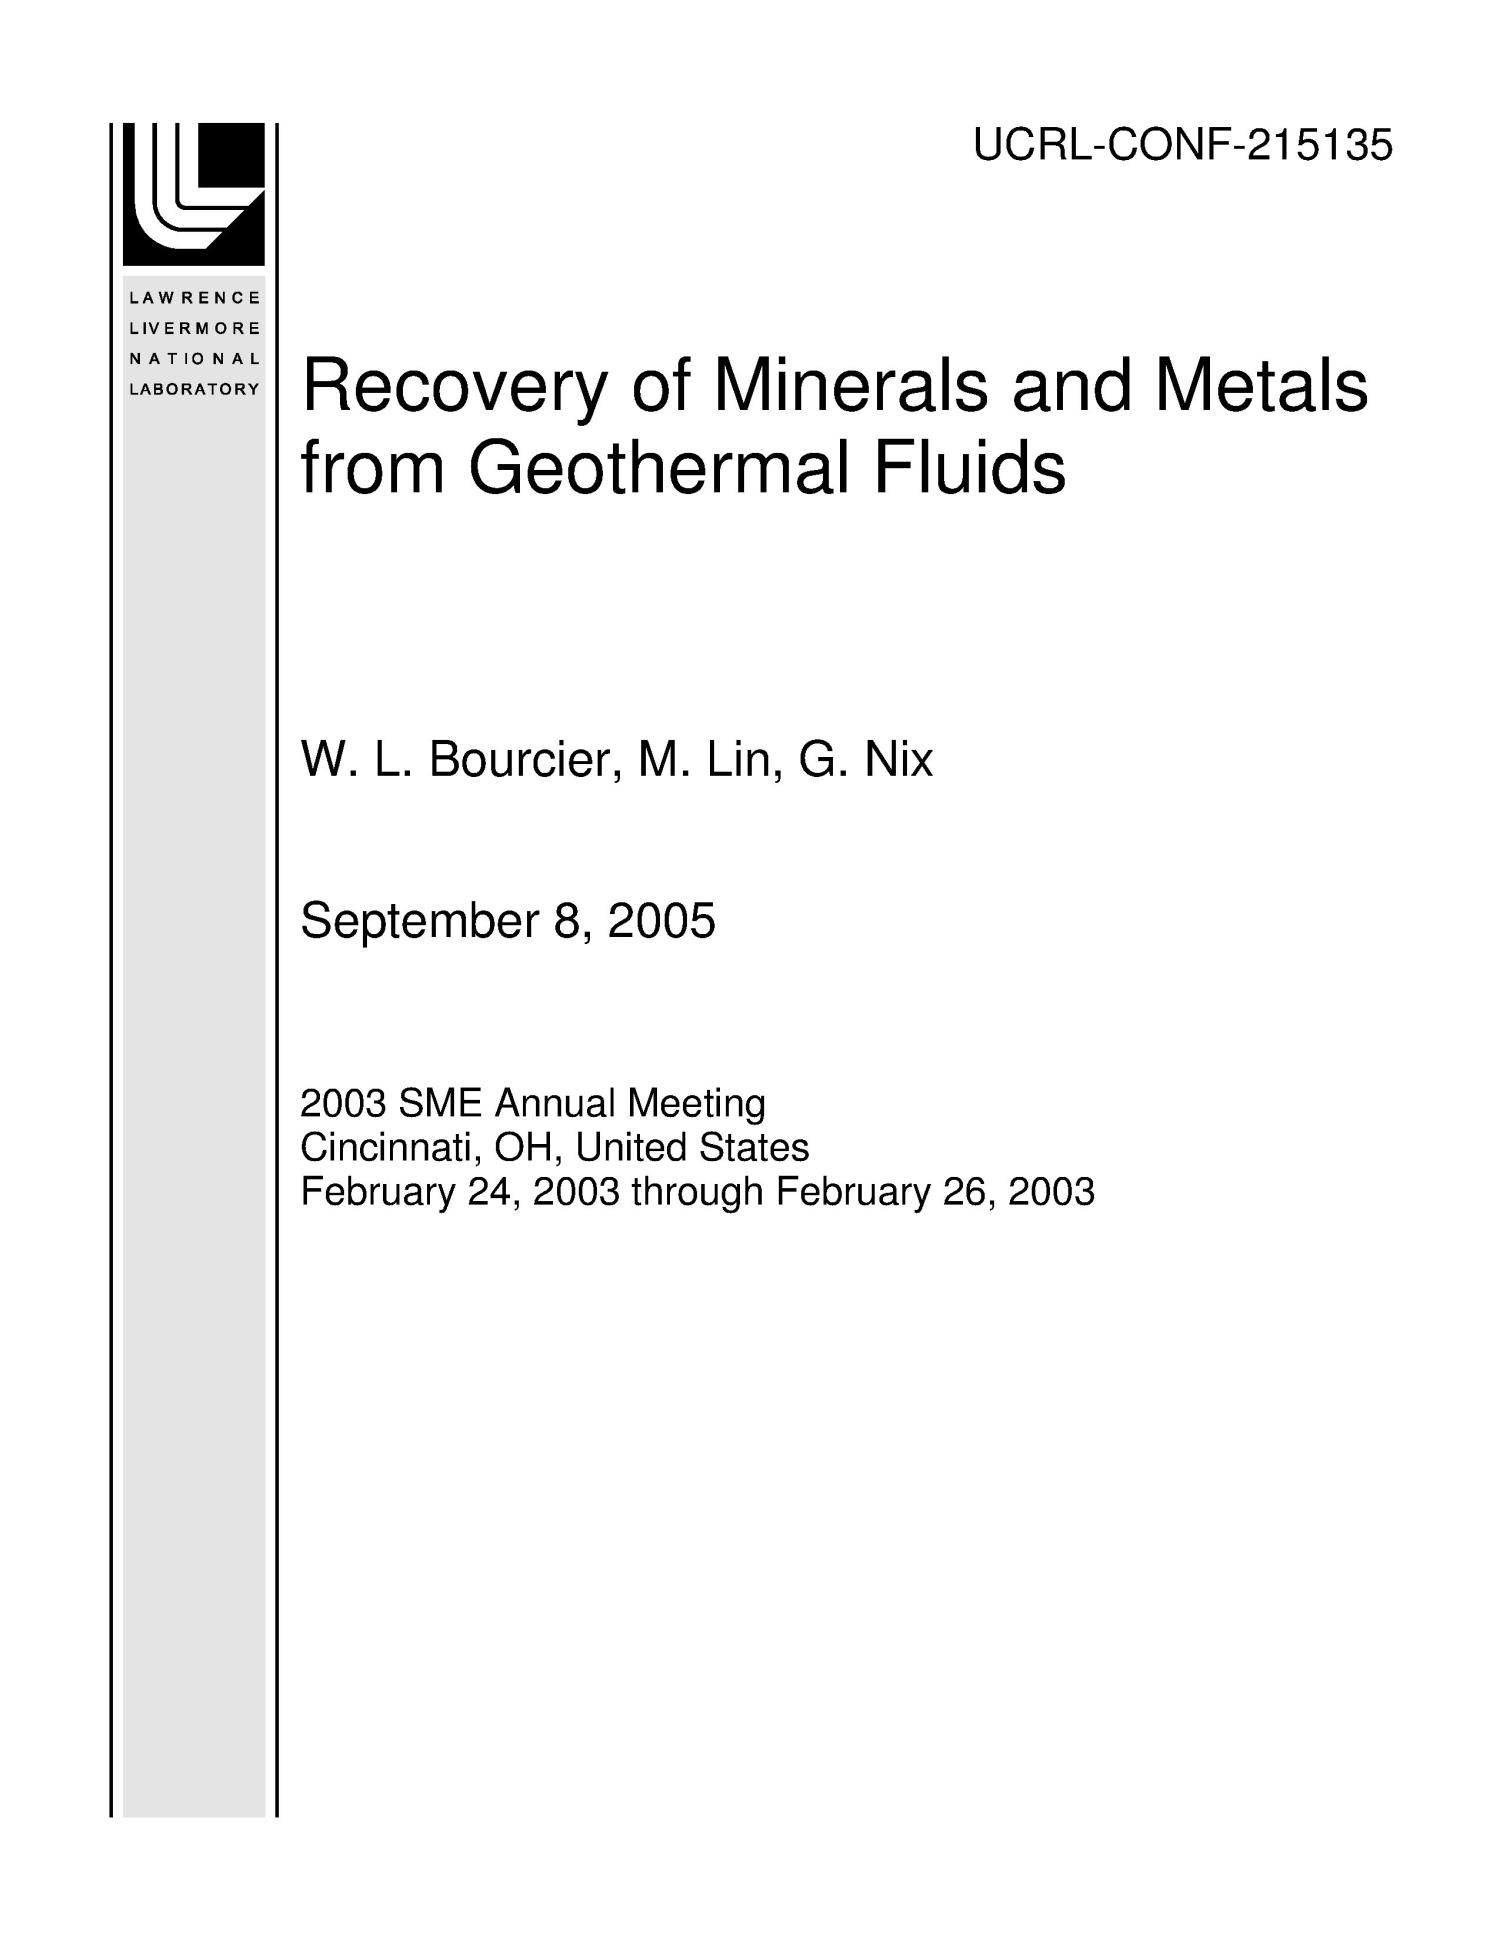 Recovery of Minerals and Metals from Geothermal Fluids                                                                                                      [Sequence #]: 1 of 19